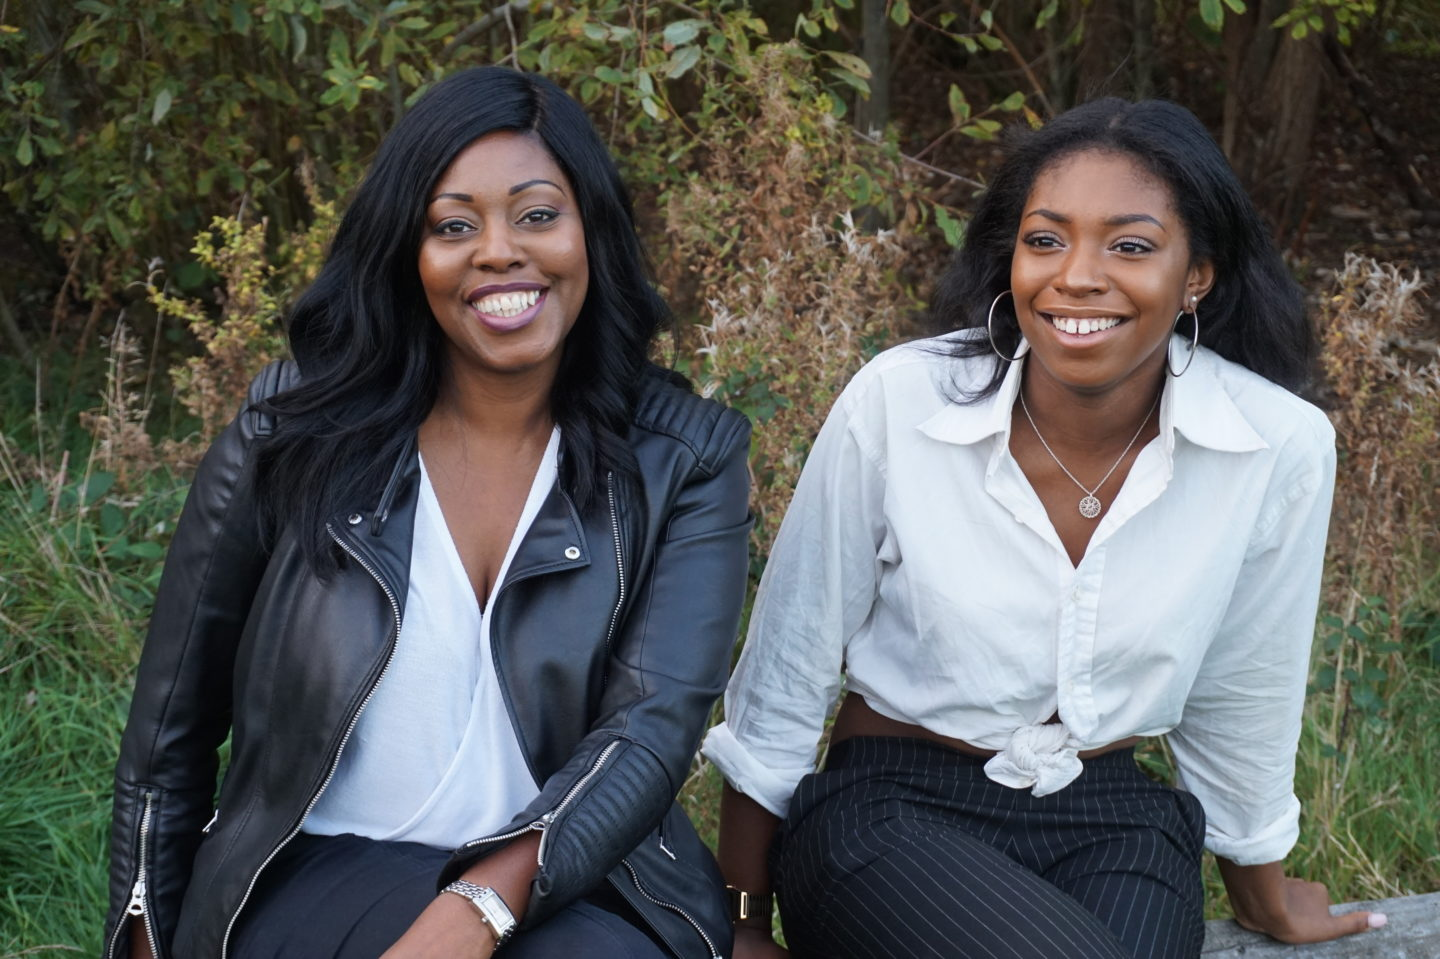 Like Mother Like Daughter | Fierce 50 Campaign | Millenials vs Mid-lifers Interview on The Feminine Code